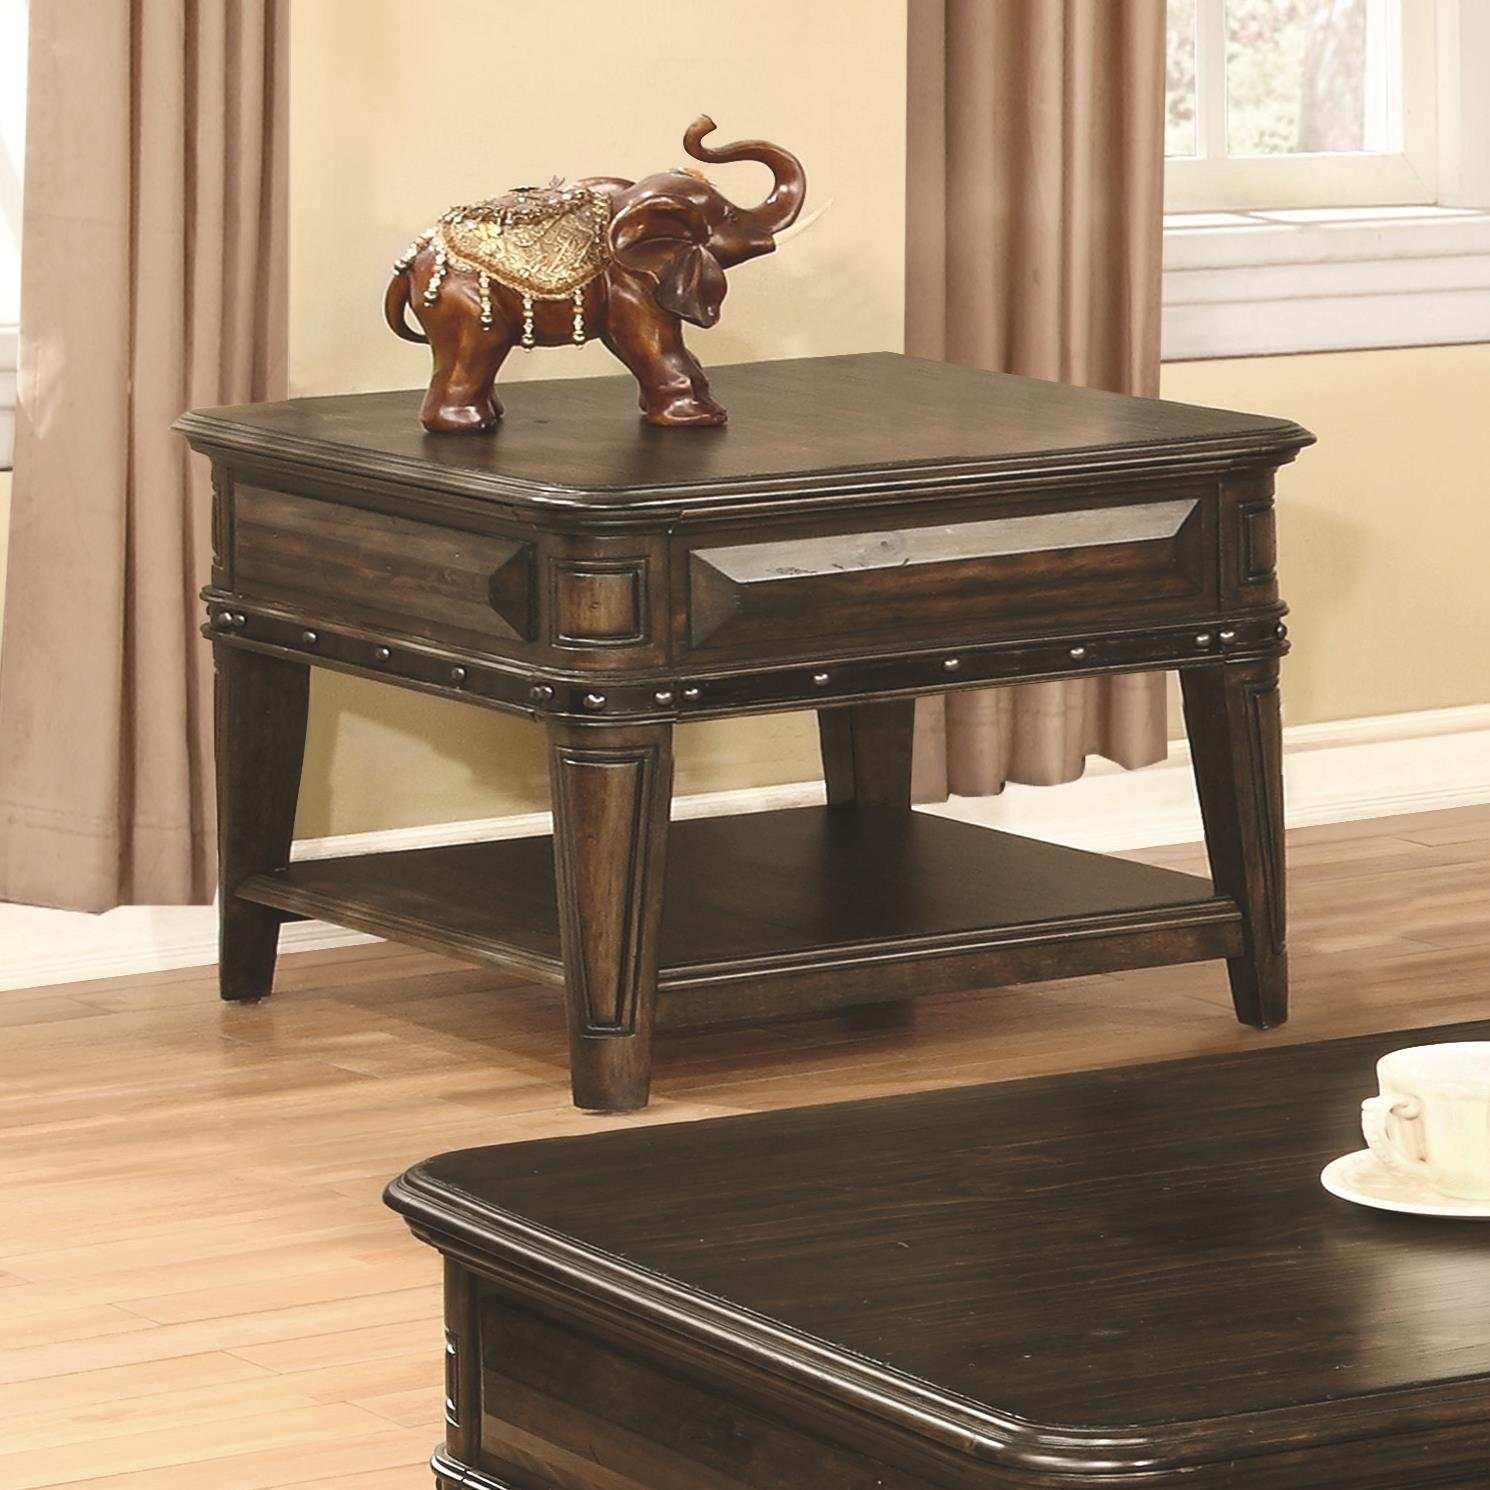 70425 End Table by Coaster Furniture at Del Sol Furniture